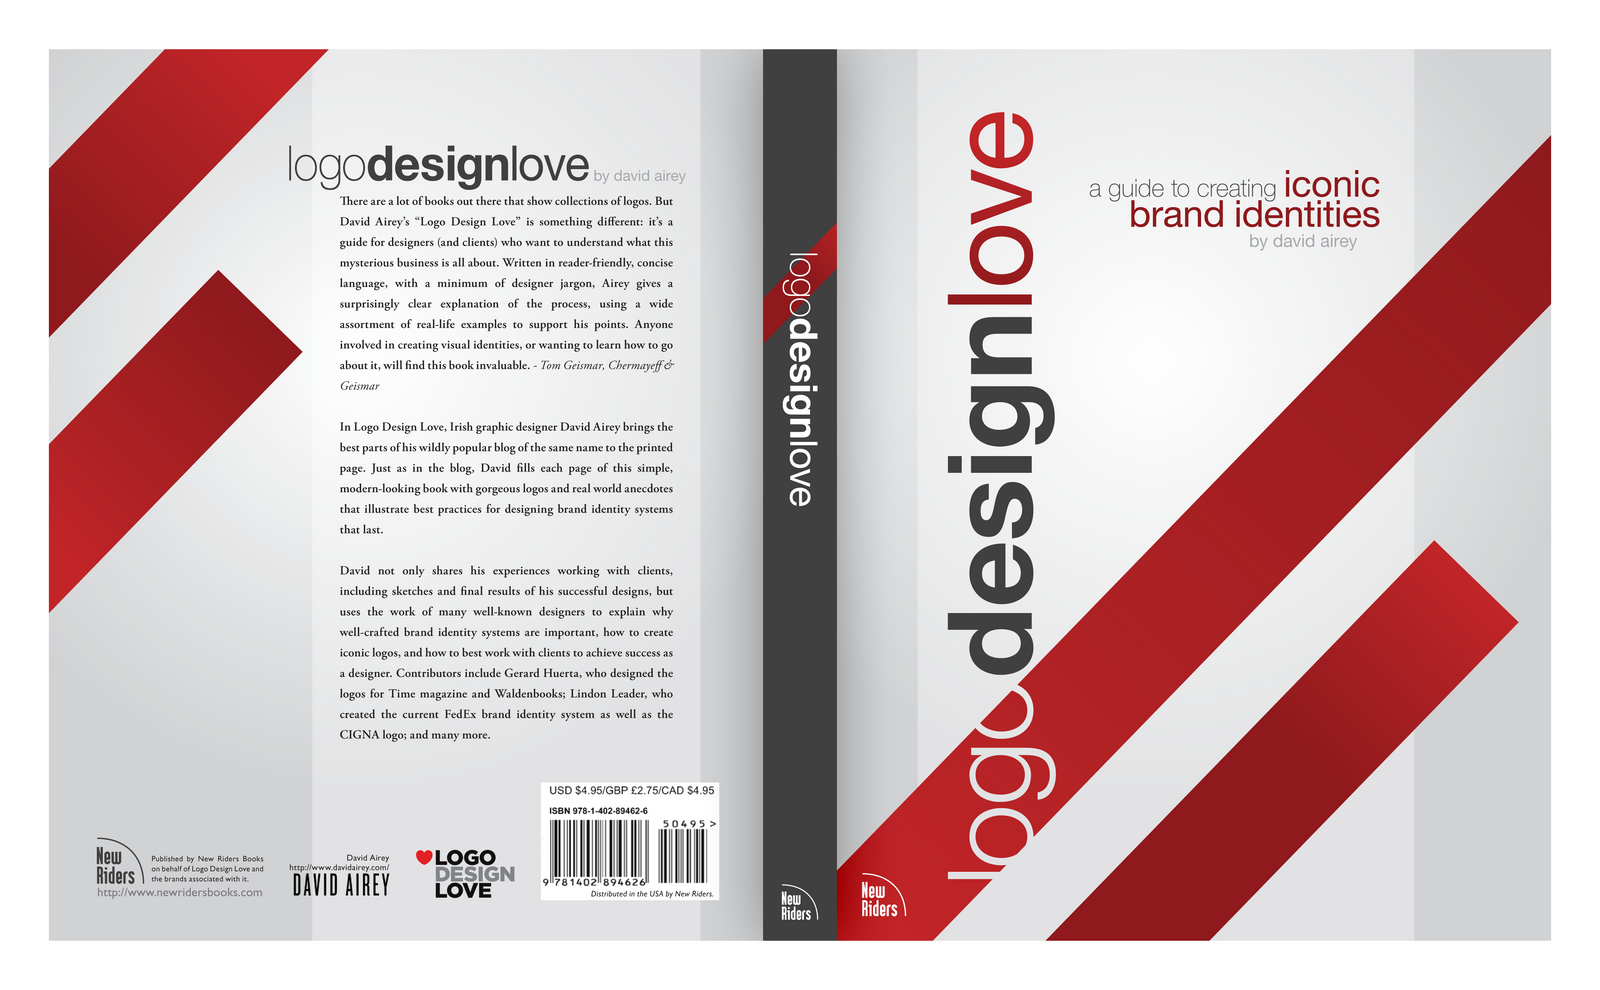 Book Jacket Cover Design : Book cover redesign by justmardesign on deviantart